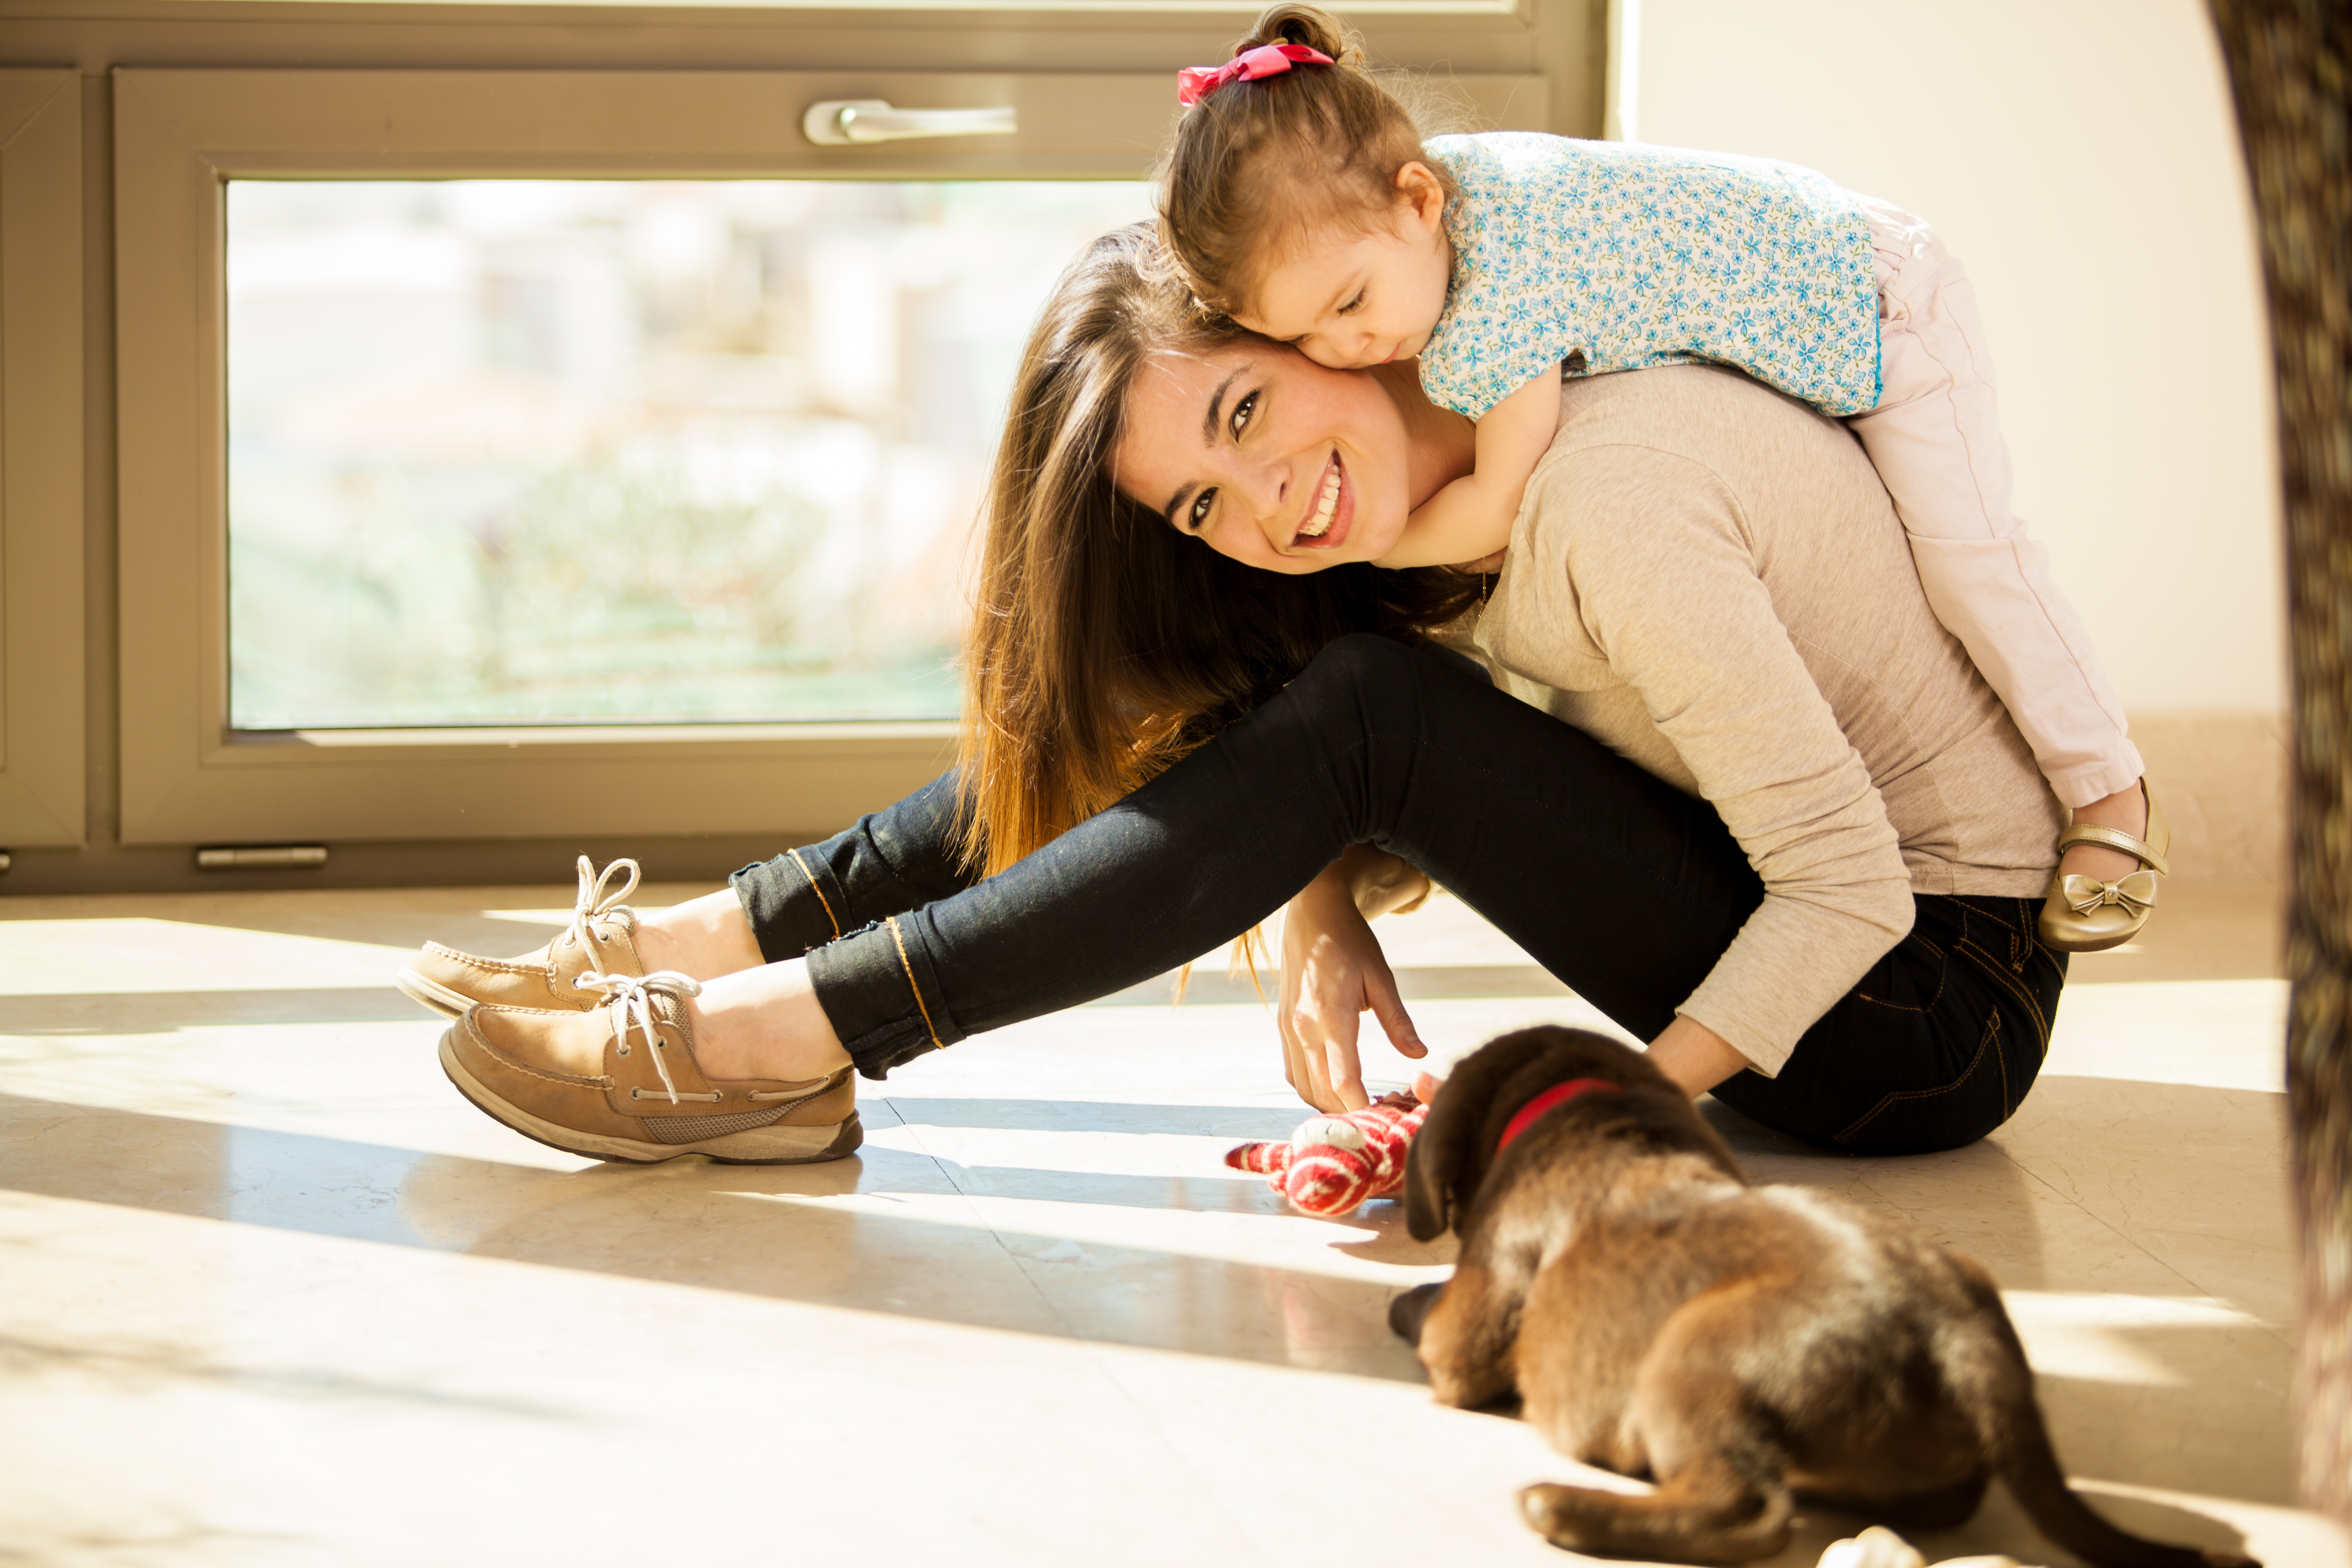 Beautiful young Hispanic mother with a baby girl and a cute Labrador puppy at home